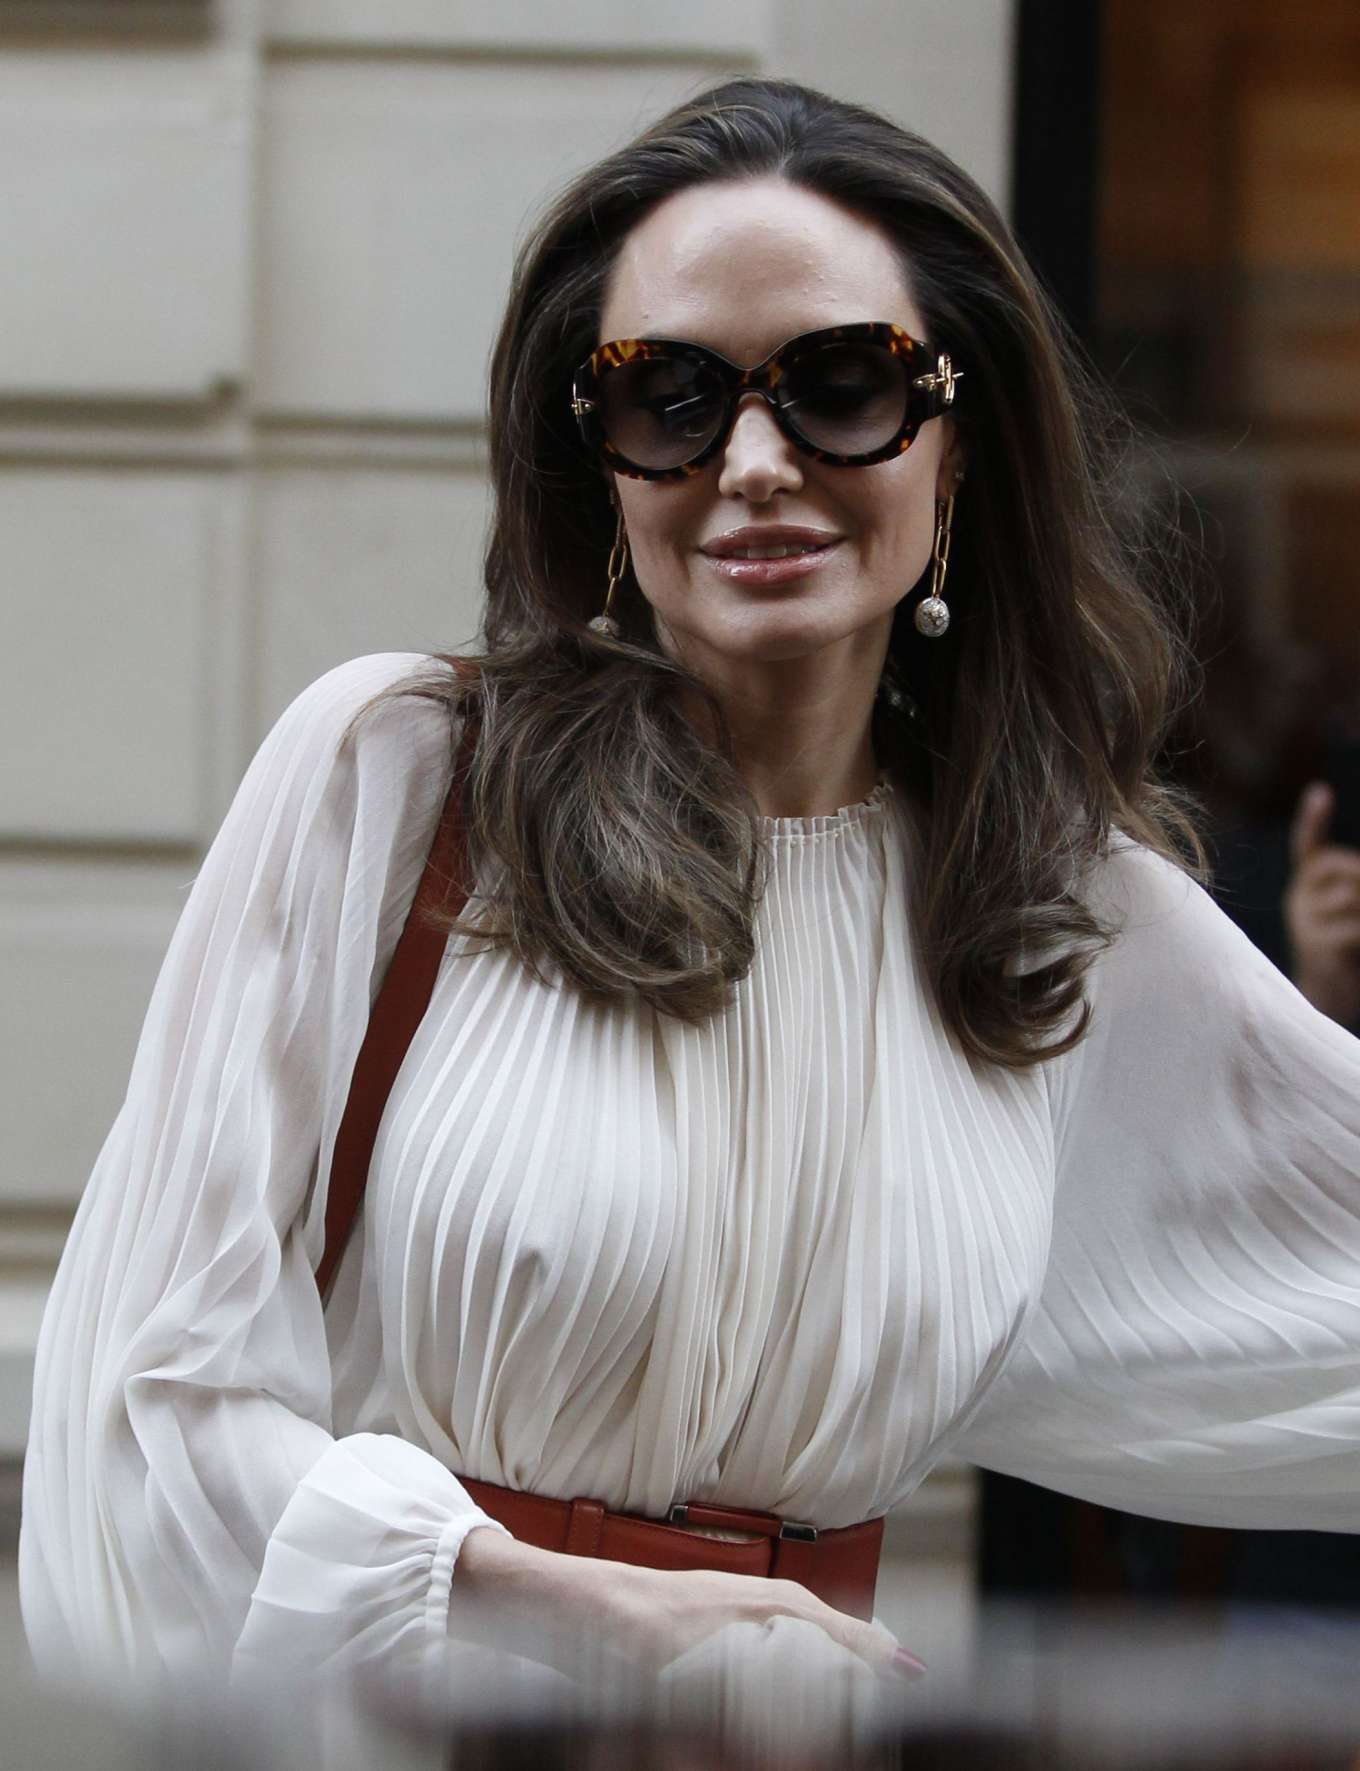 Angelina Jolie, Nude pumps, leather, black Louis Vuitton sunglasses, off white The Row dress, narrow, pointy, high heel. Angelina Jolie donning pointy Nude leather pumps with high heel